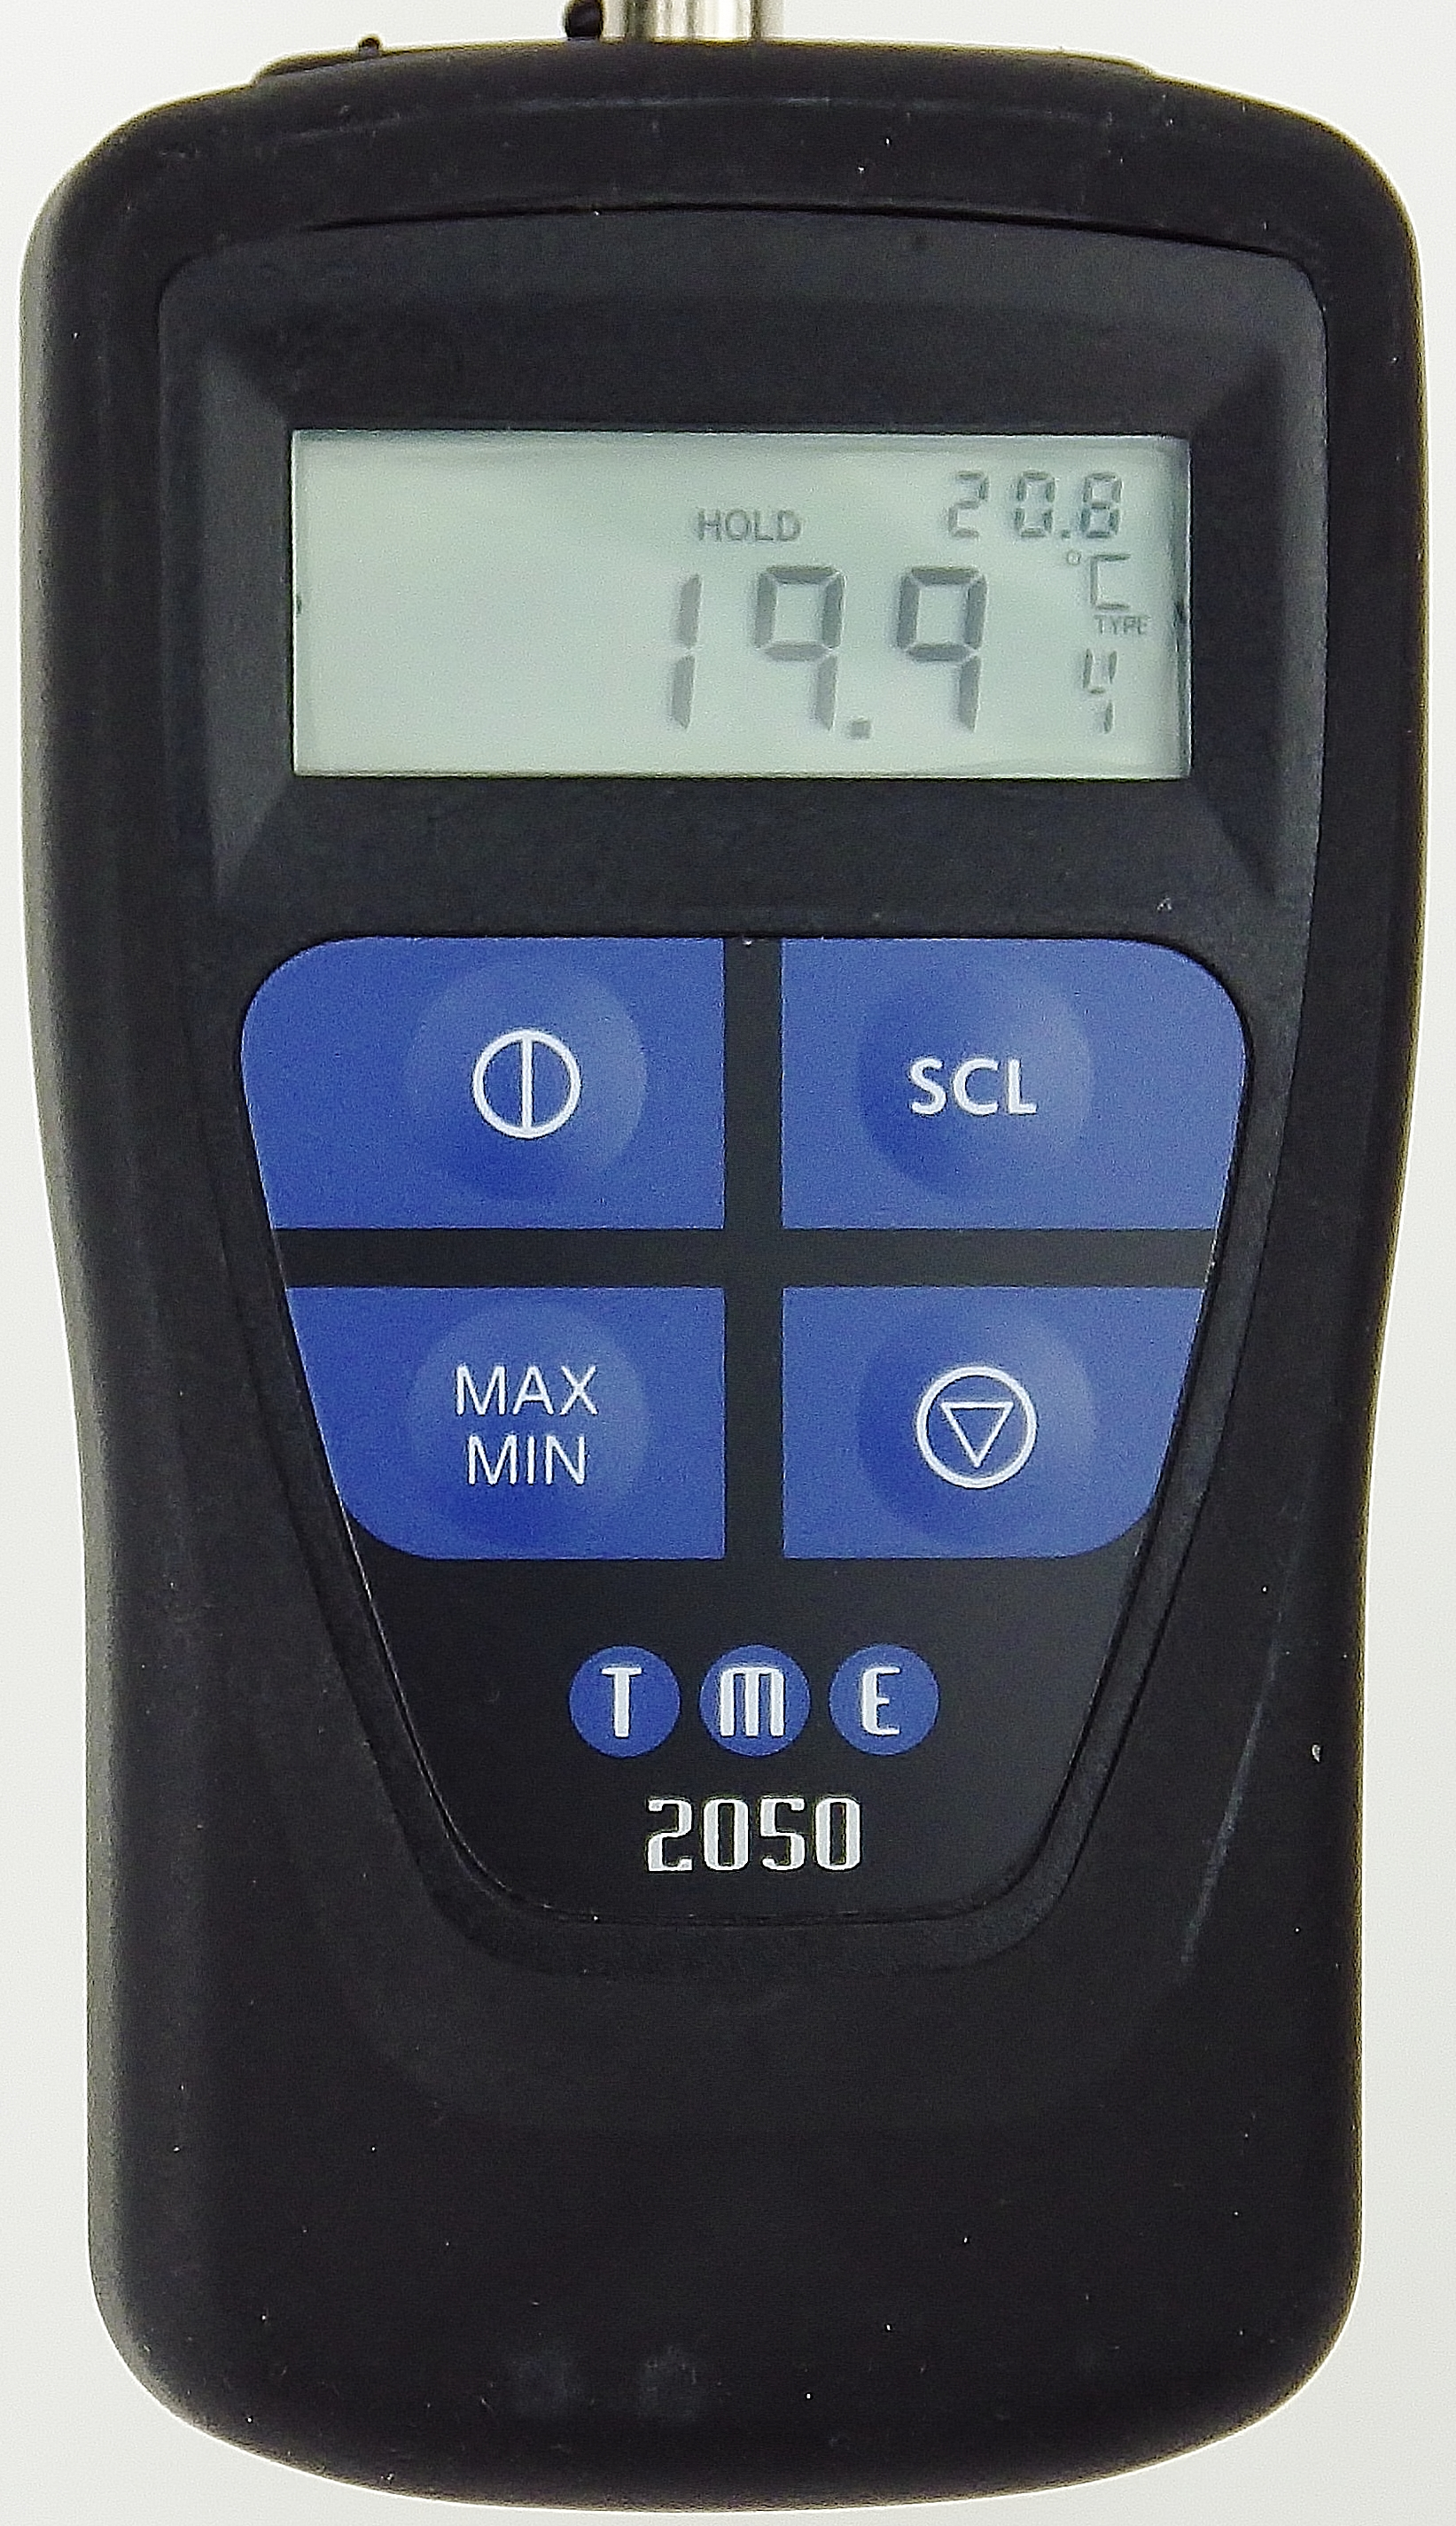 This Self-Calibrating PT100 Thermometer features a 4/3/2 wire measurement, max/min functions, hold function, dual displa